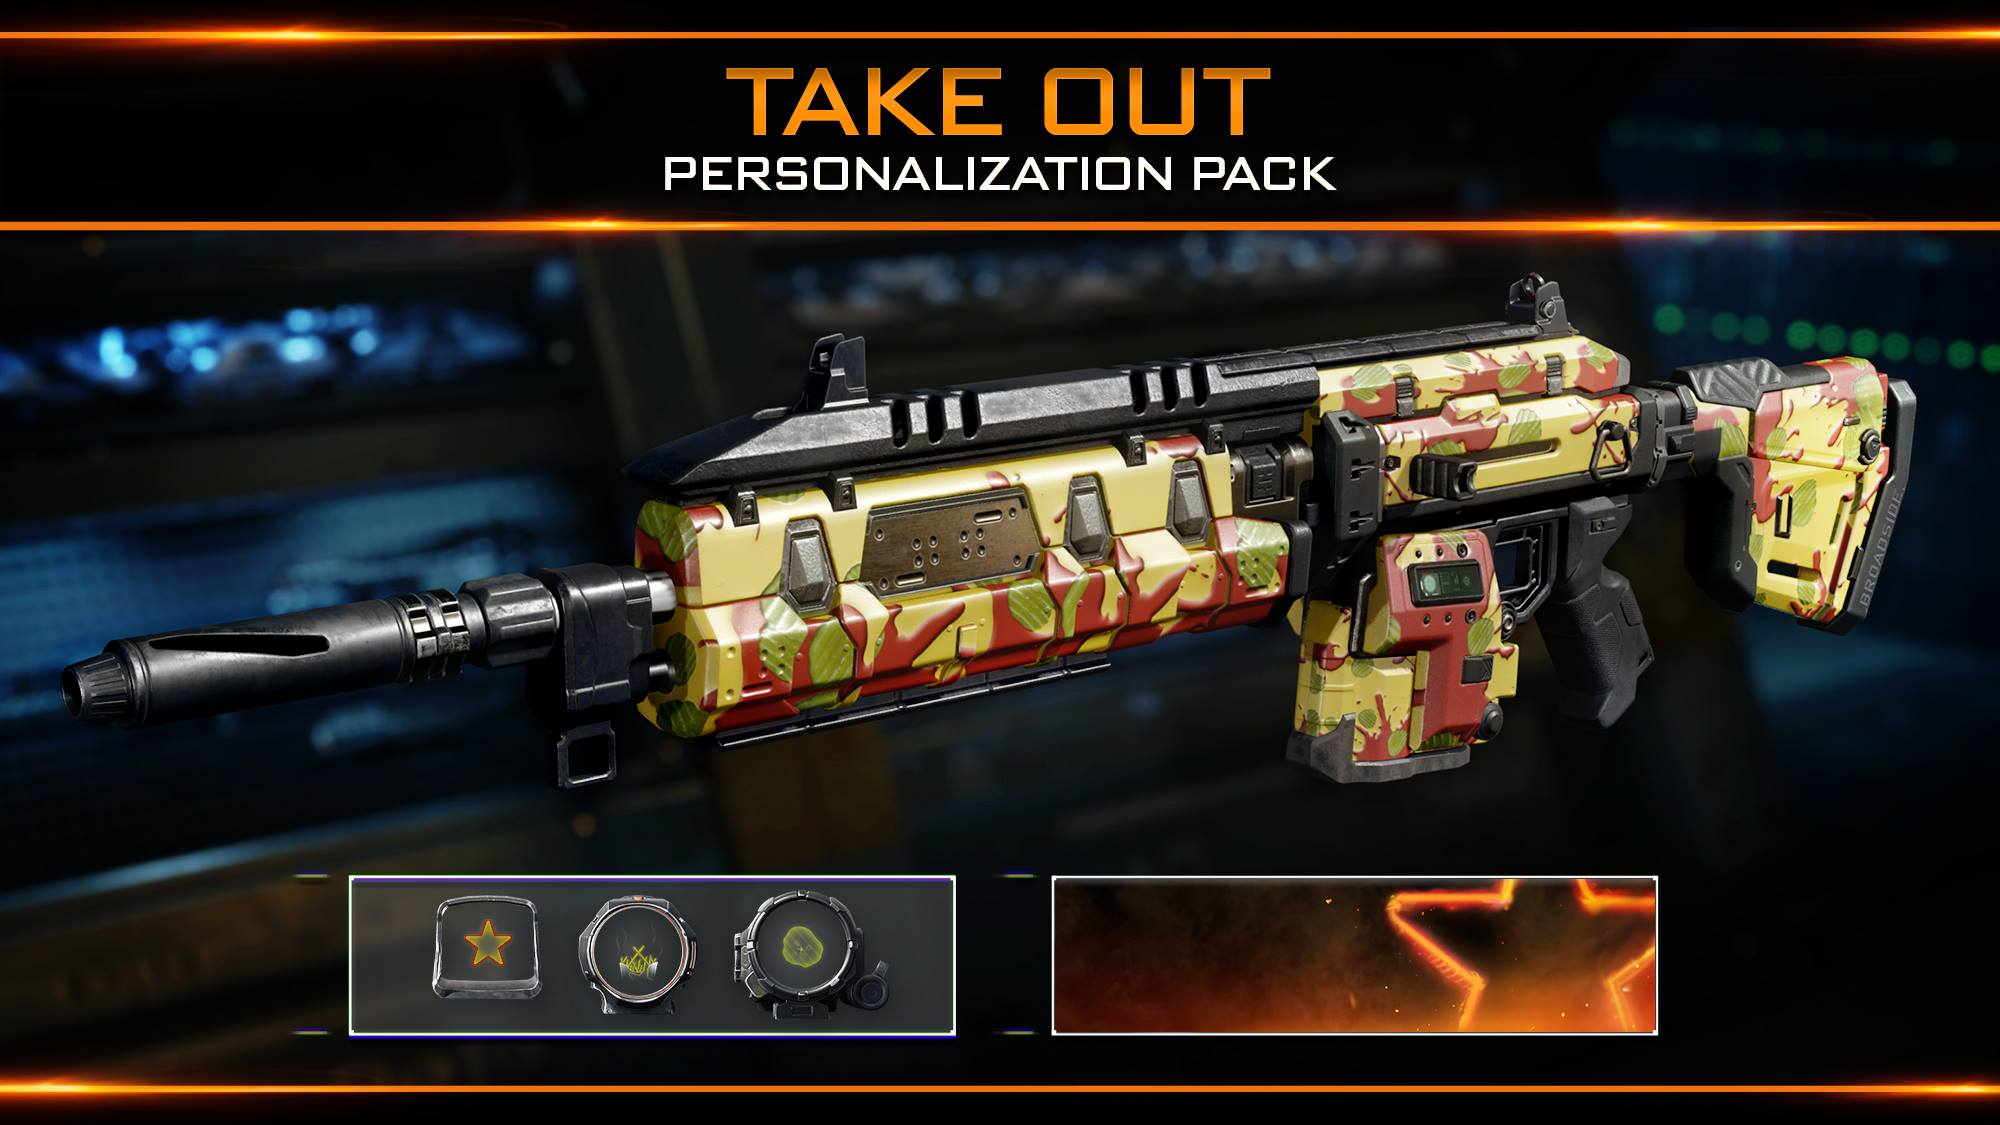 black ops zombie maps ps3 with This Is What The Hardeescarl Jrs Exclusive Take Out Personalization Pack Looks Like on  additionally 21087 How Download Paint Jobs Call Duty Black Ops Iii additionally Call Of Duty Black Ops 2 Review Future Shock moreover Watch together with The Best Zombie Themed Games.